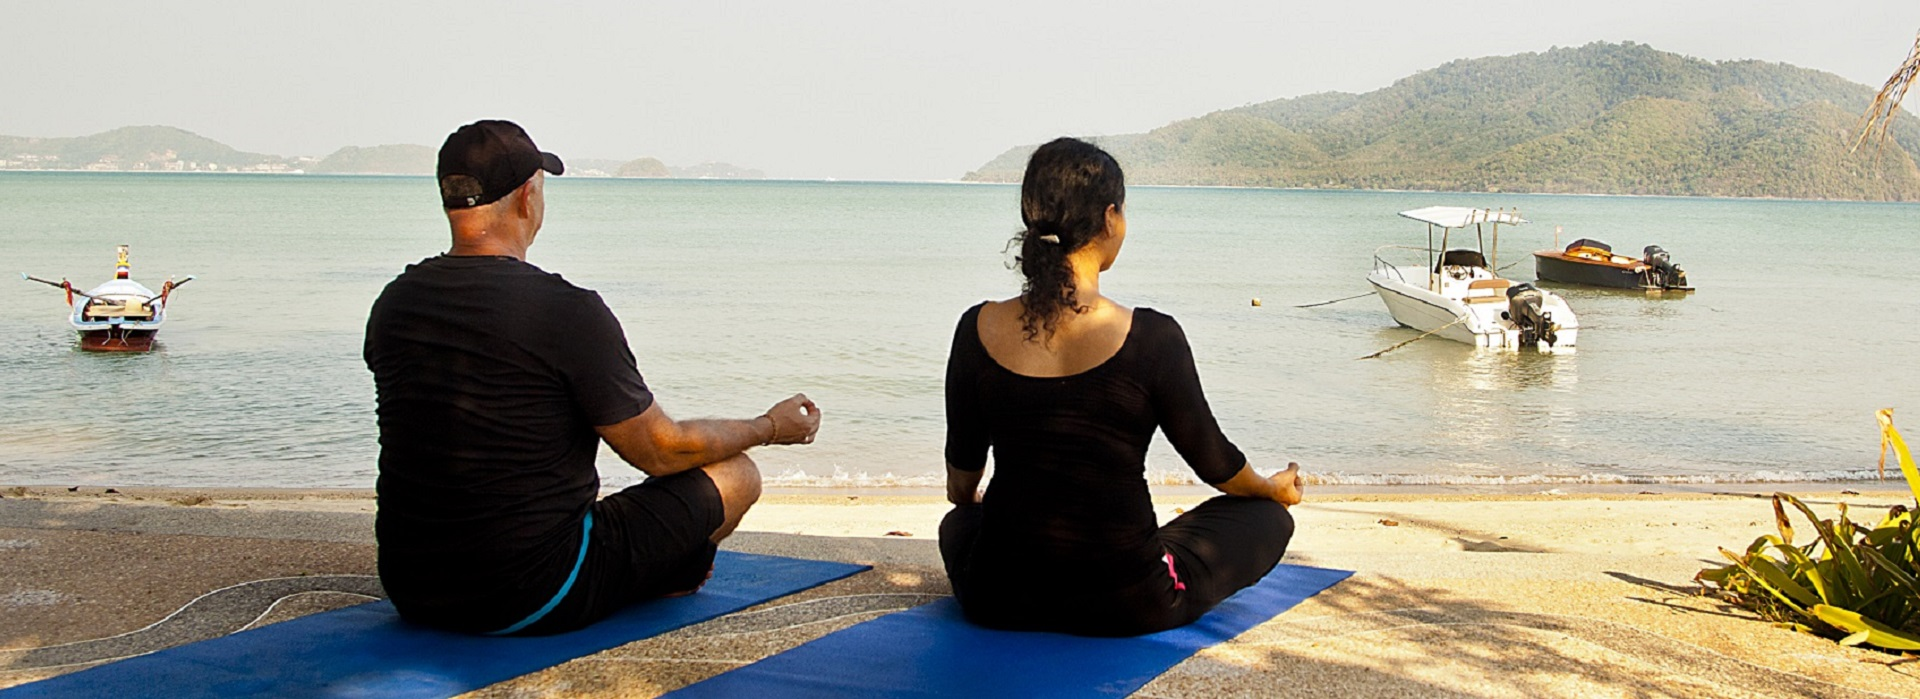 Atmanjai Fitness retreats in Rawai Phuket